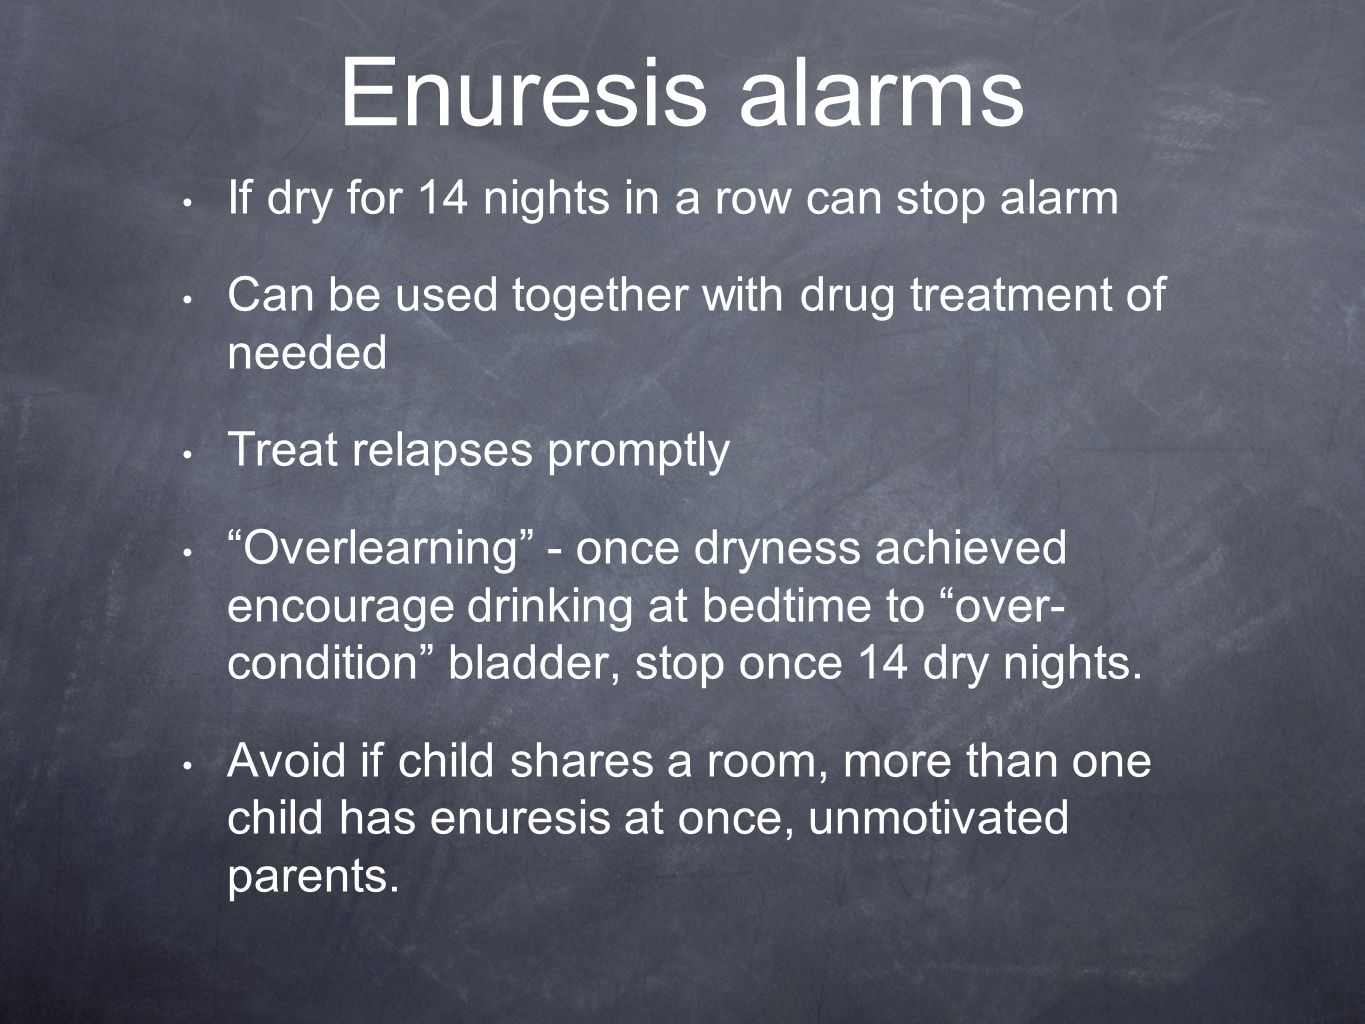 Enuresis alarms If dry for 14 nights in a row can stop alarm Can be used together with drug treatment of needed Treat relapses promptly Overlearning - once dryness achieved encourage drinking at bedtime to over- condition bladder, stop once 14 dry nights.